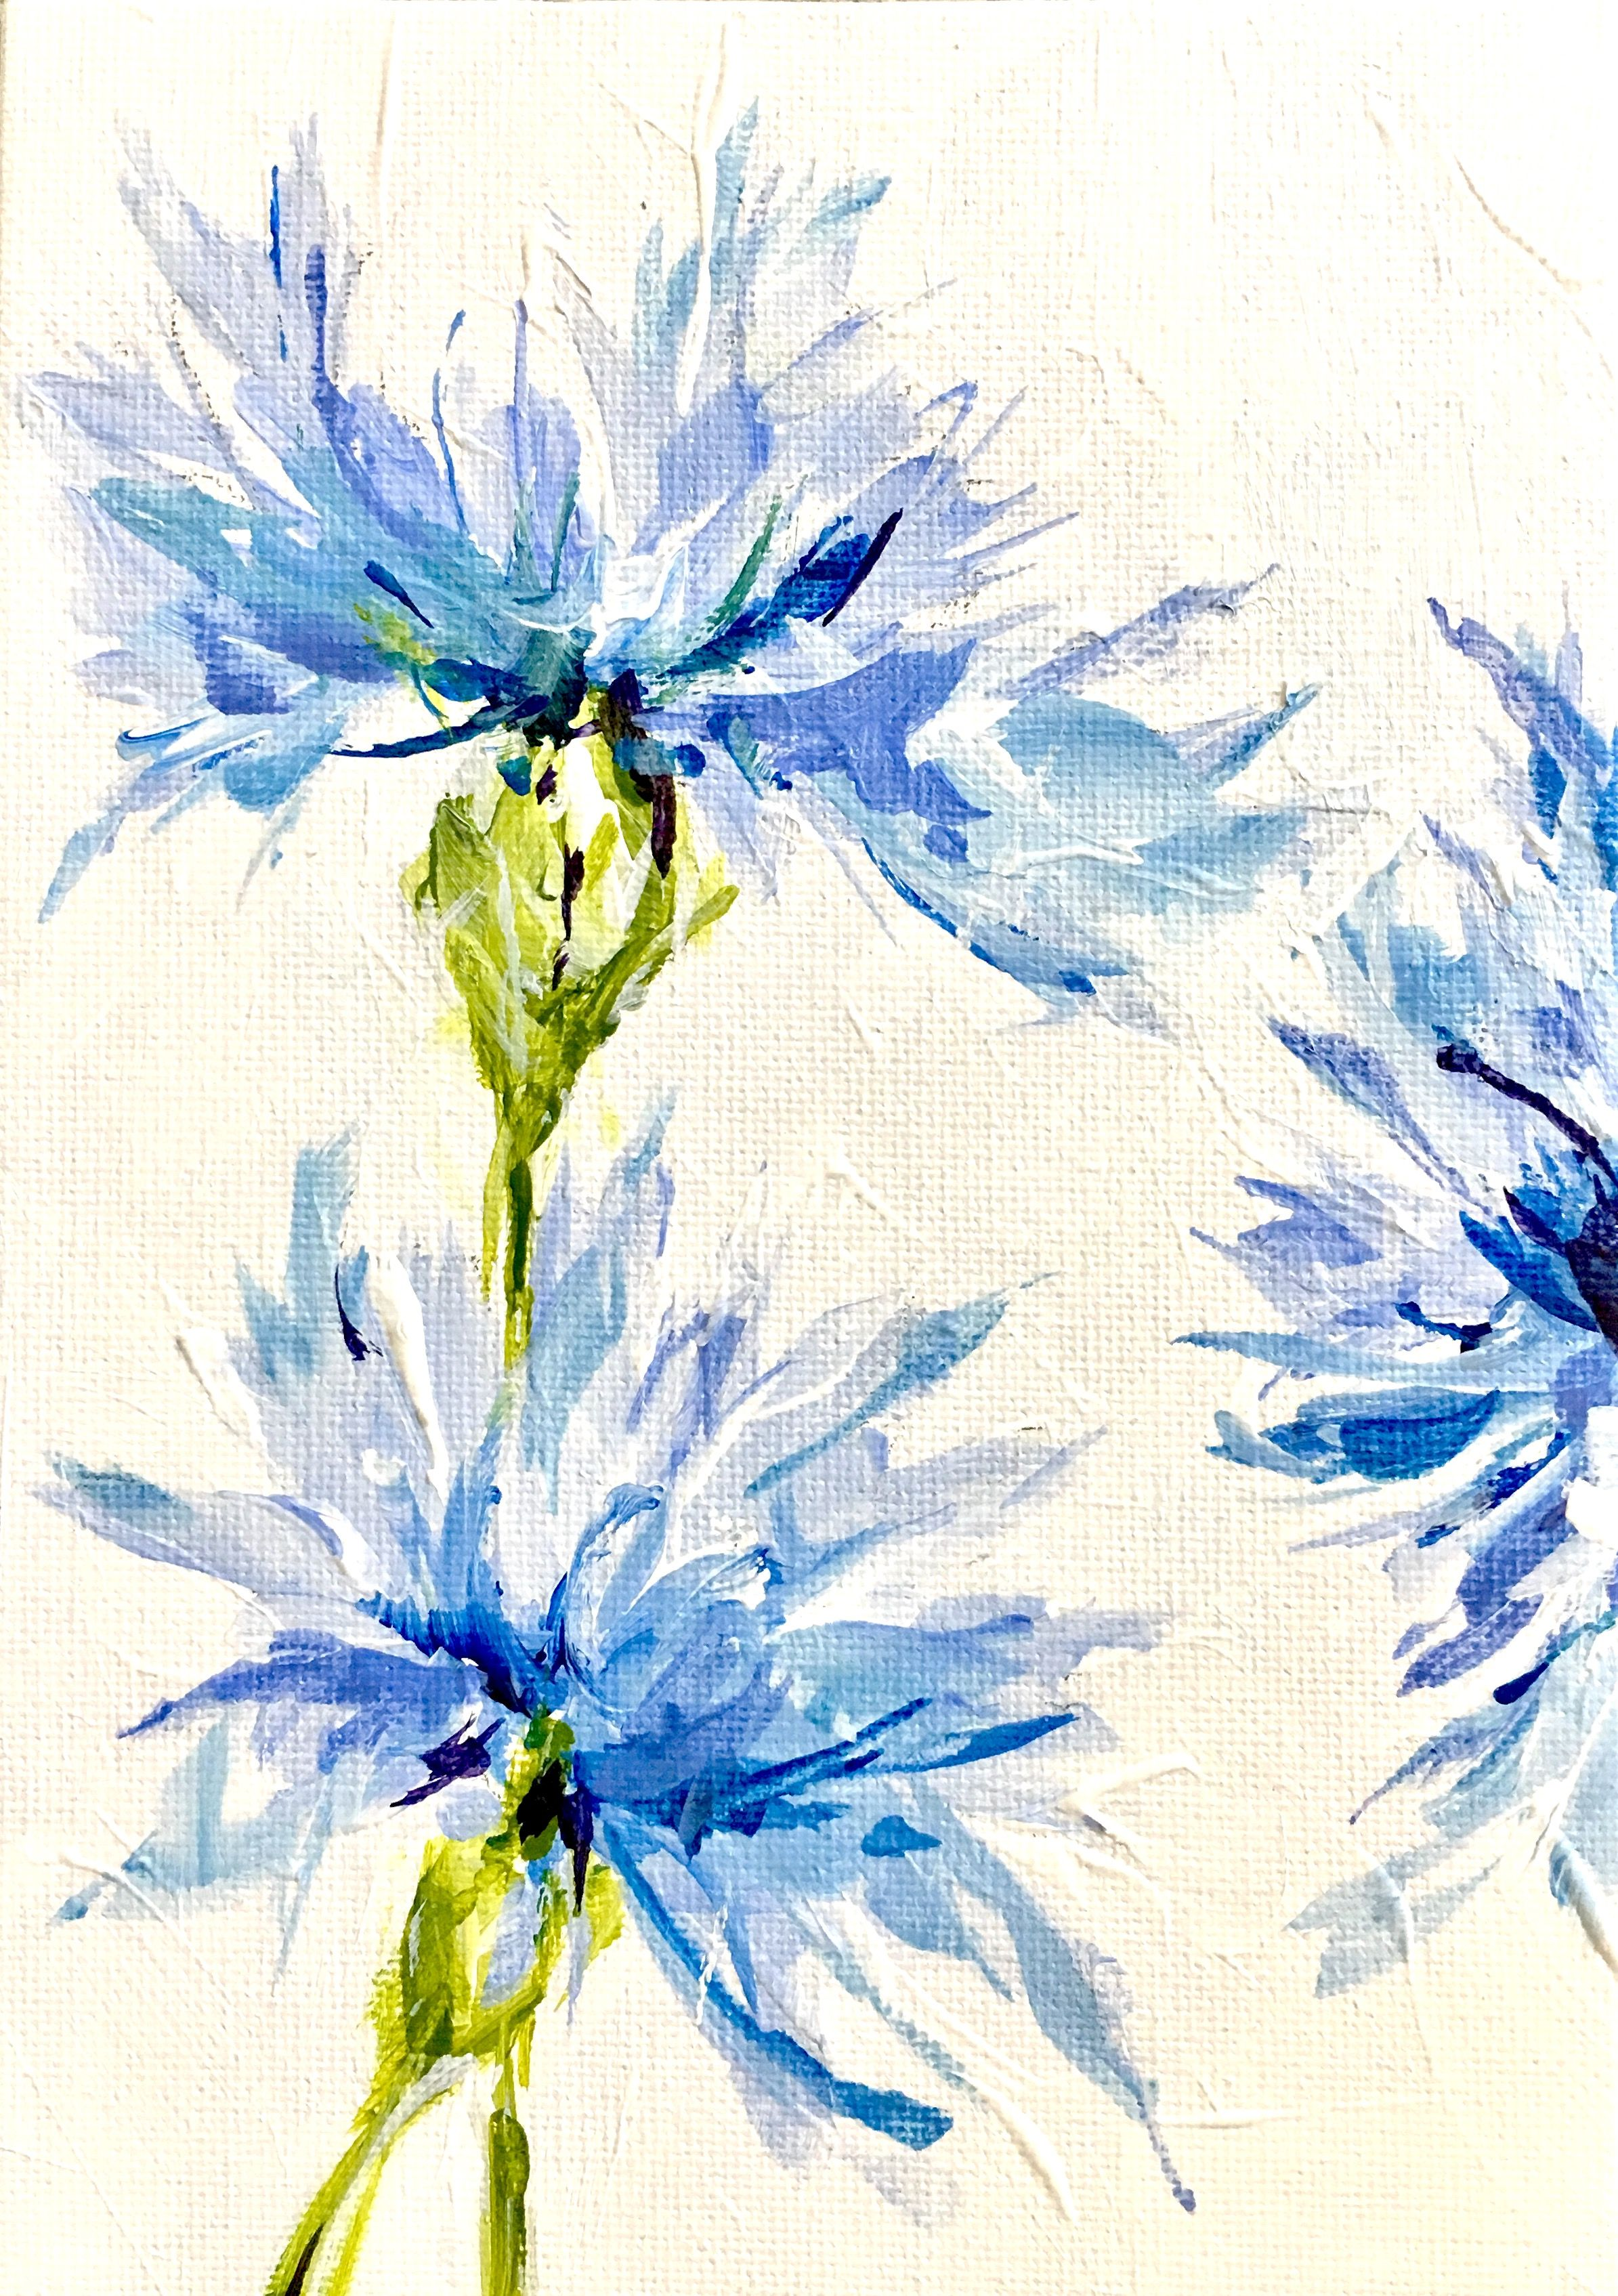 Cornflower als symbol of hope susanpepedesigns floral cornflower als symbol of hope susanpepedesigns buycottarizona Image collections